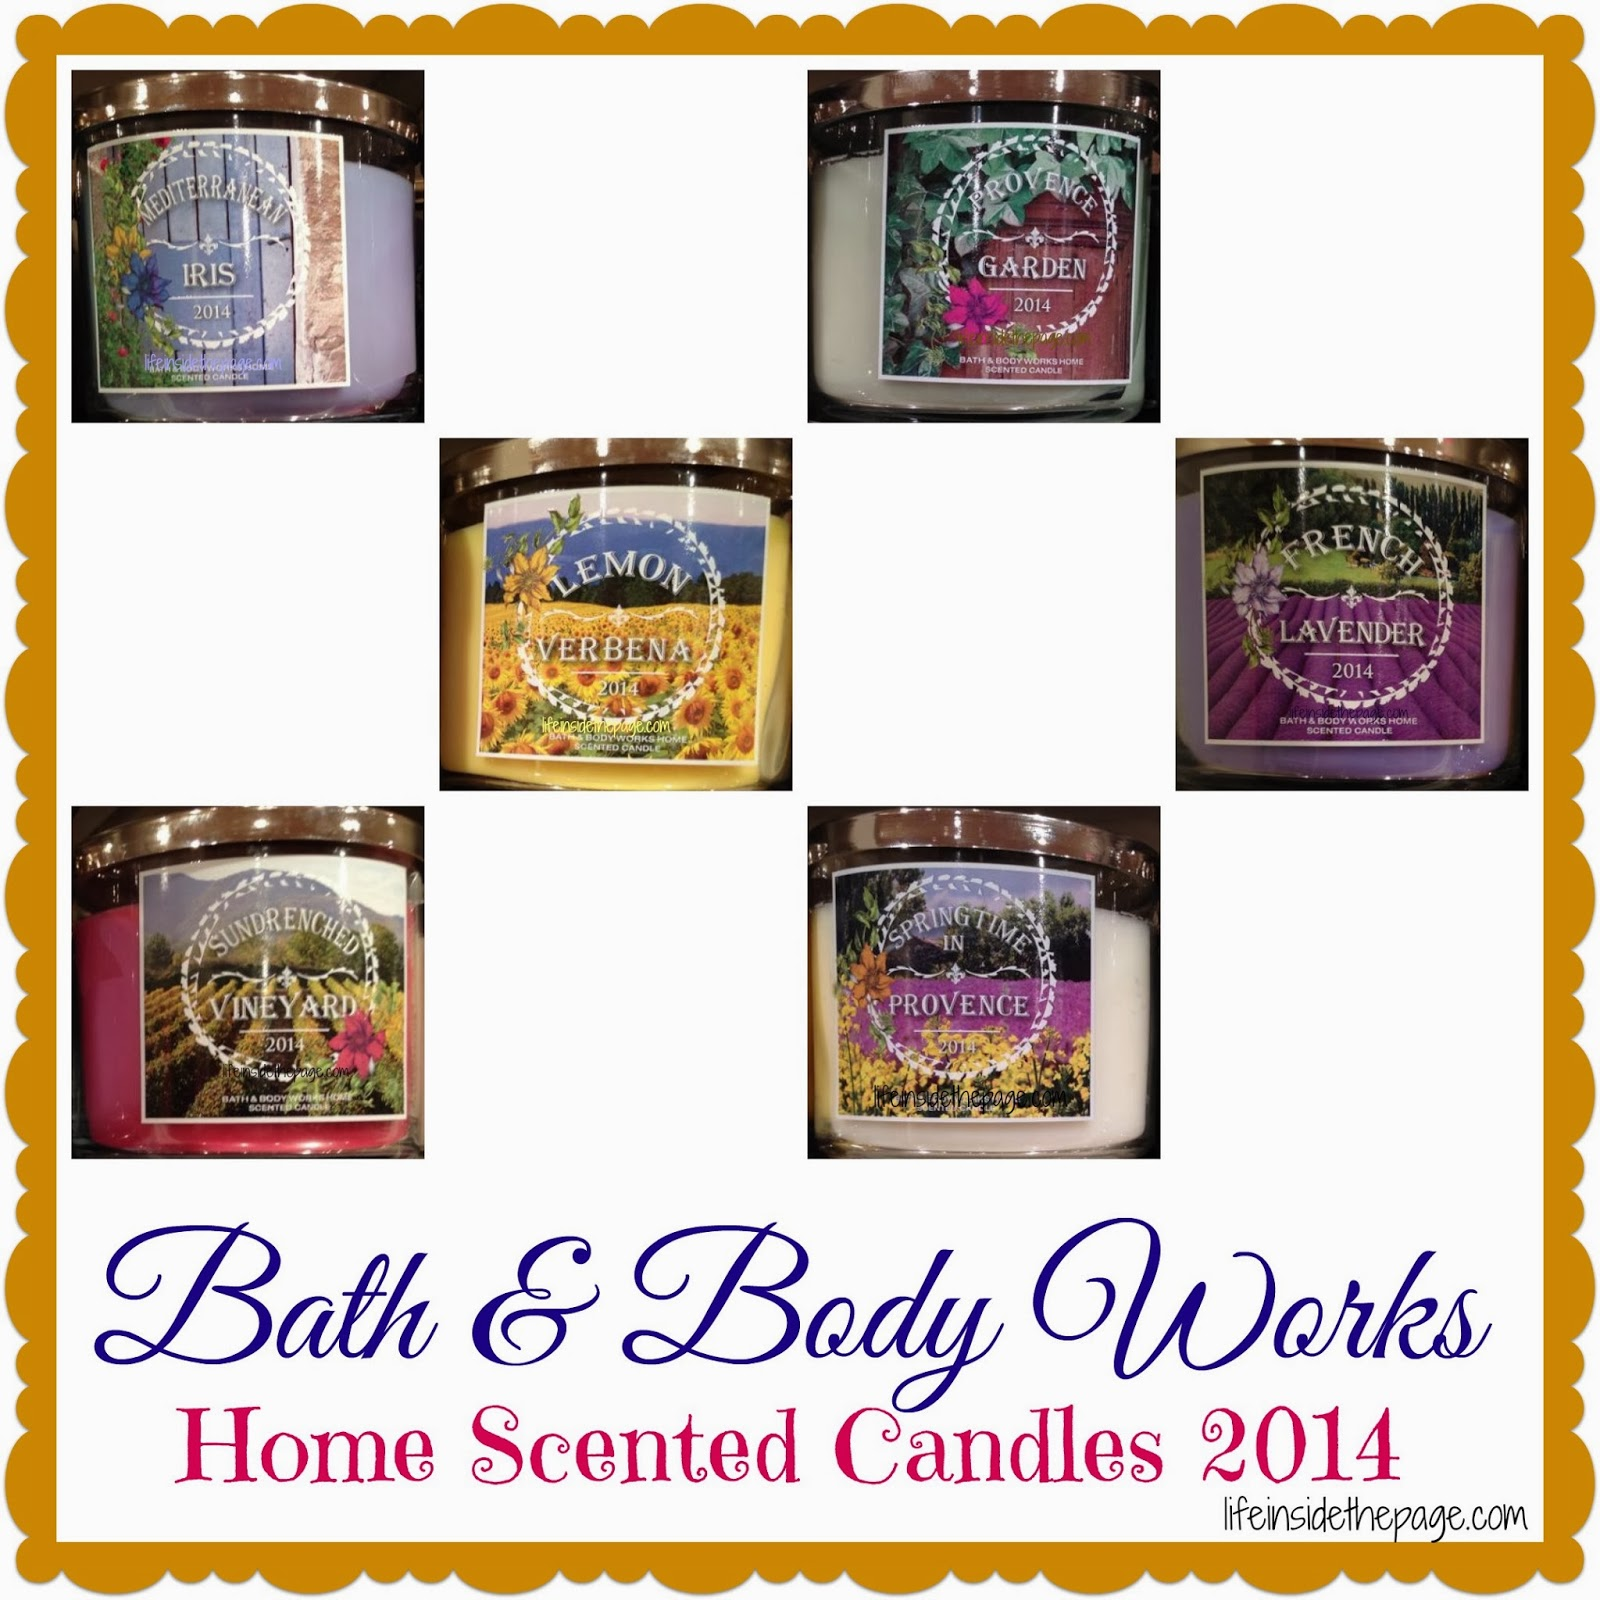 Developed by Harry Slatkin and team for Bath & Body Works Bath & Body Works Shop Our Huge Selection · Read Ratings & Reviews · Explore Amazon Devices · Shop Best Sellers2,,+ followers on Twitter.